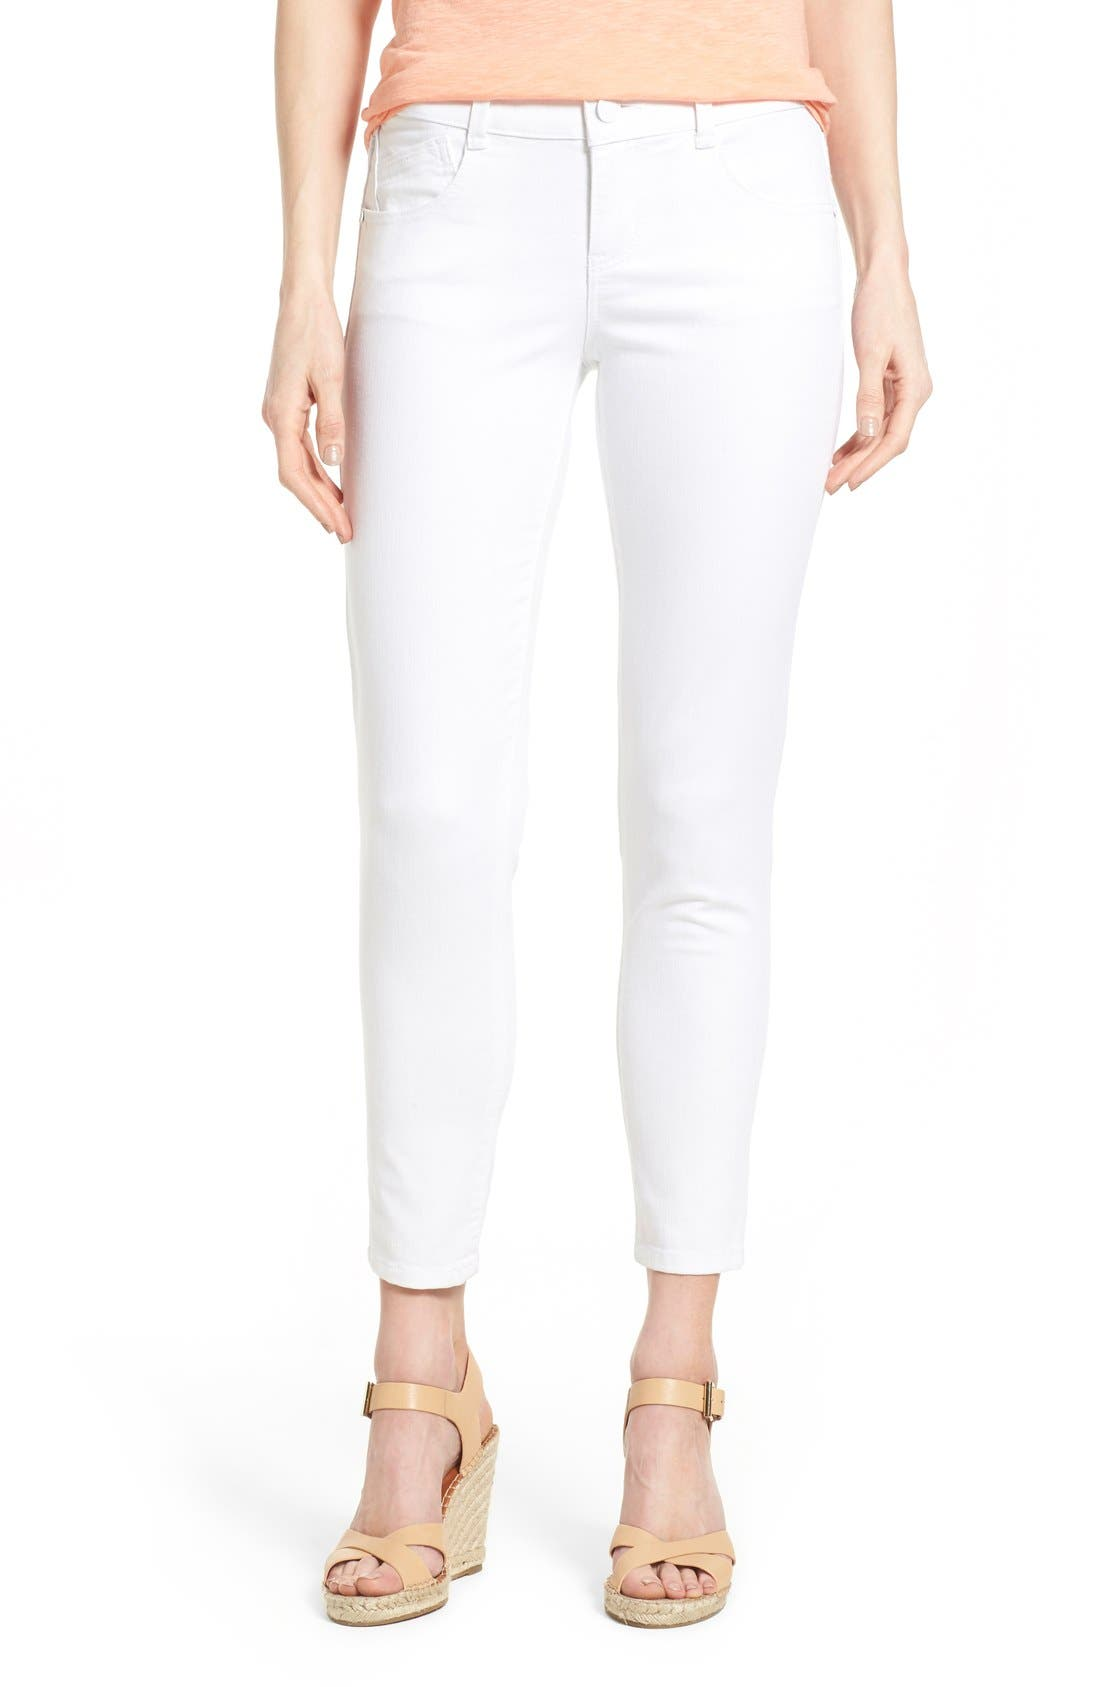 Main Image - Wit & Wisdom Ab-solution Stretch Ankle Skinny Jeans (Optic White) (Nordstrom Exclusive)